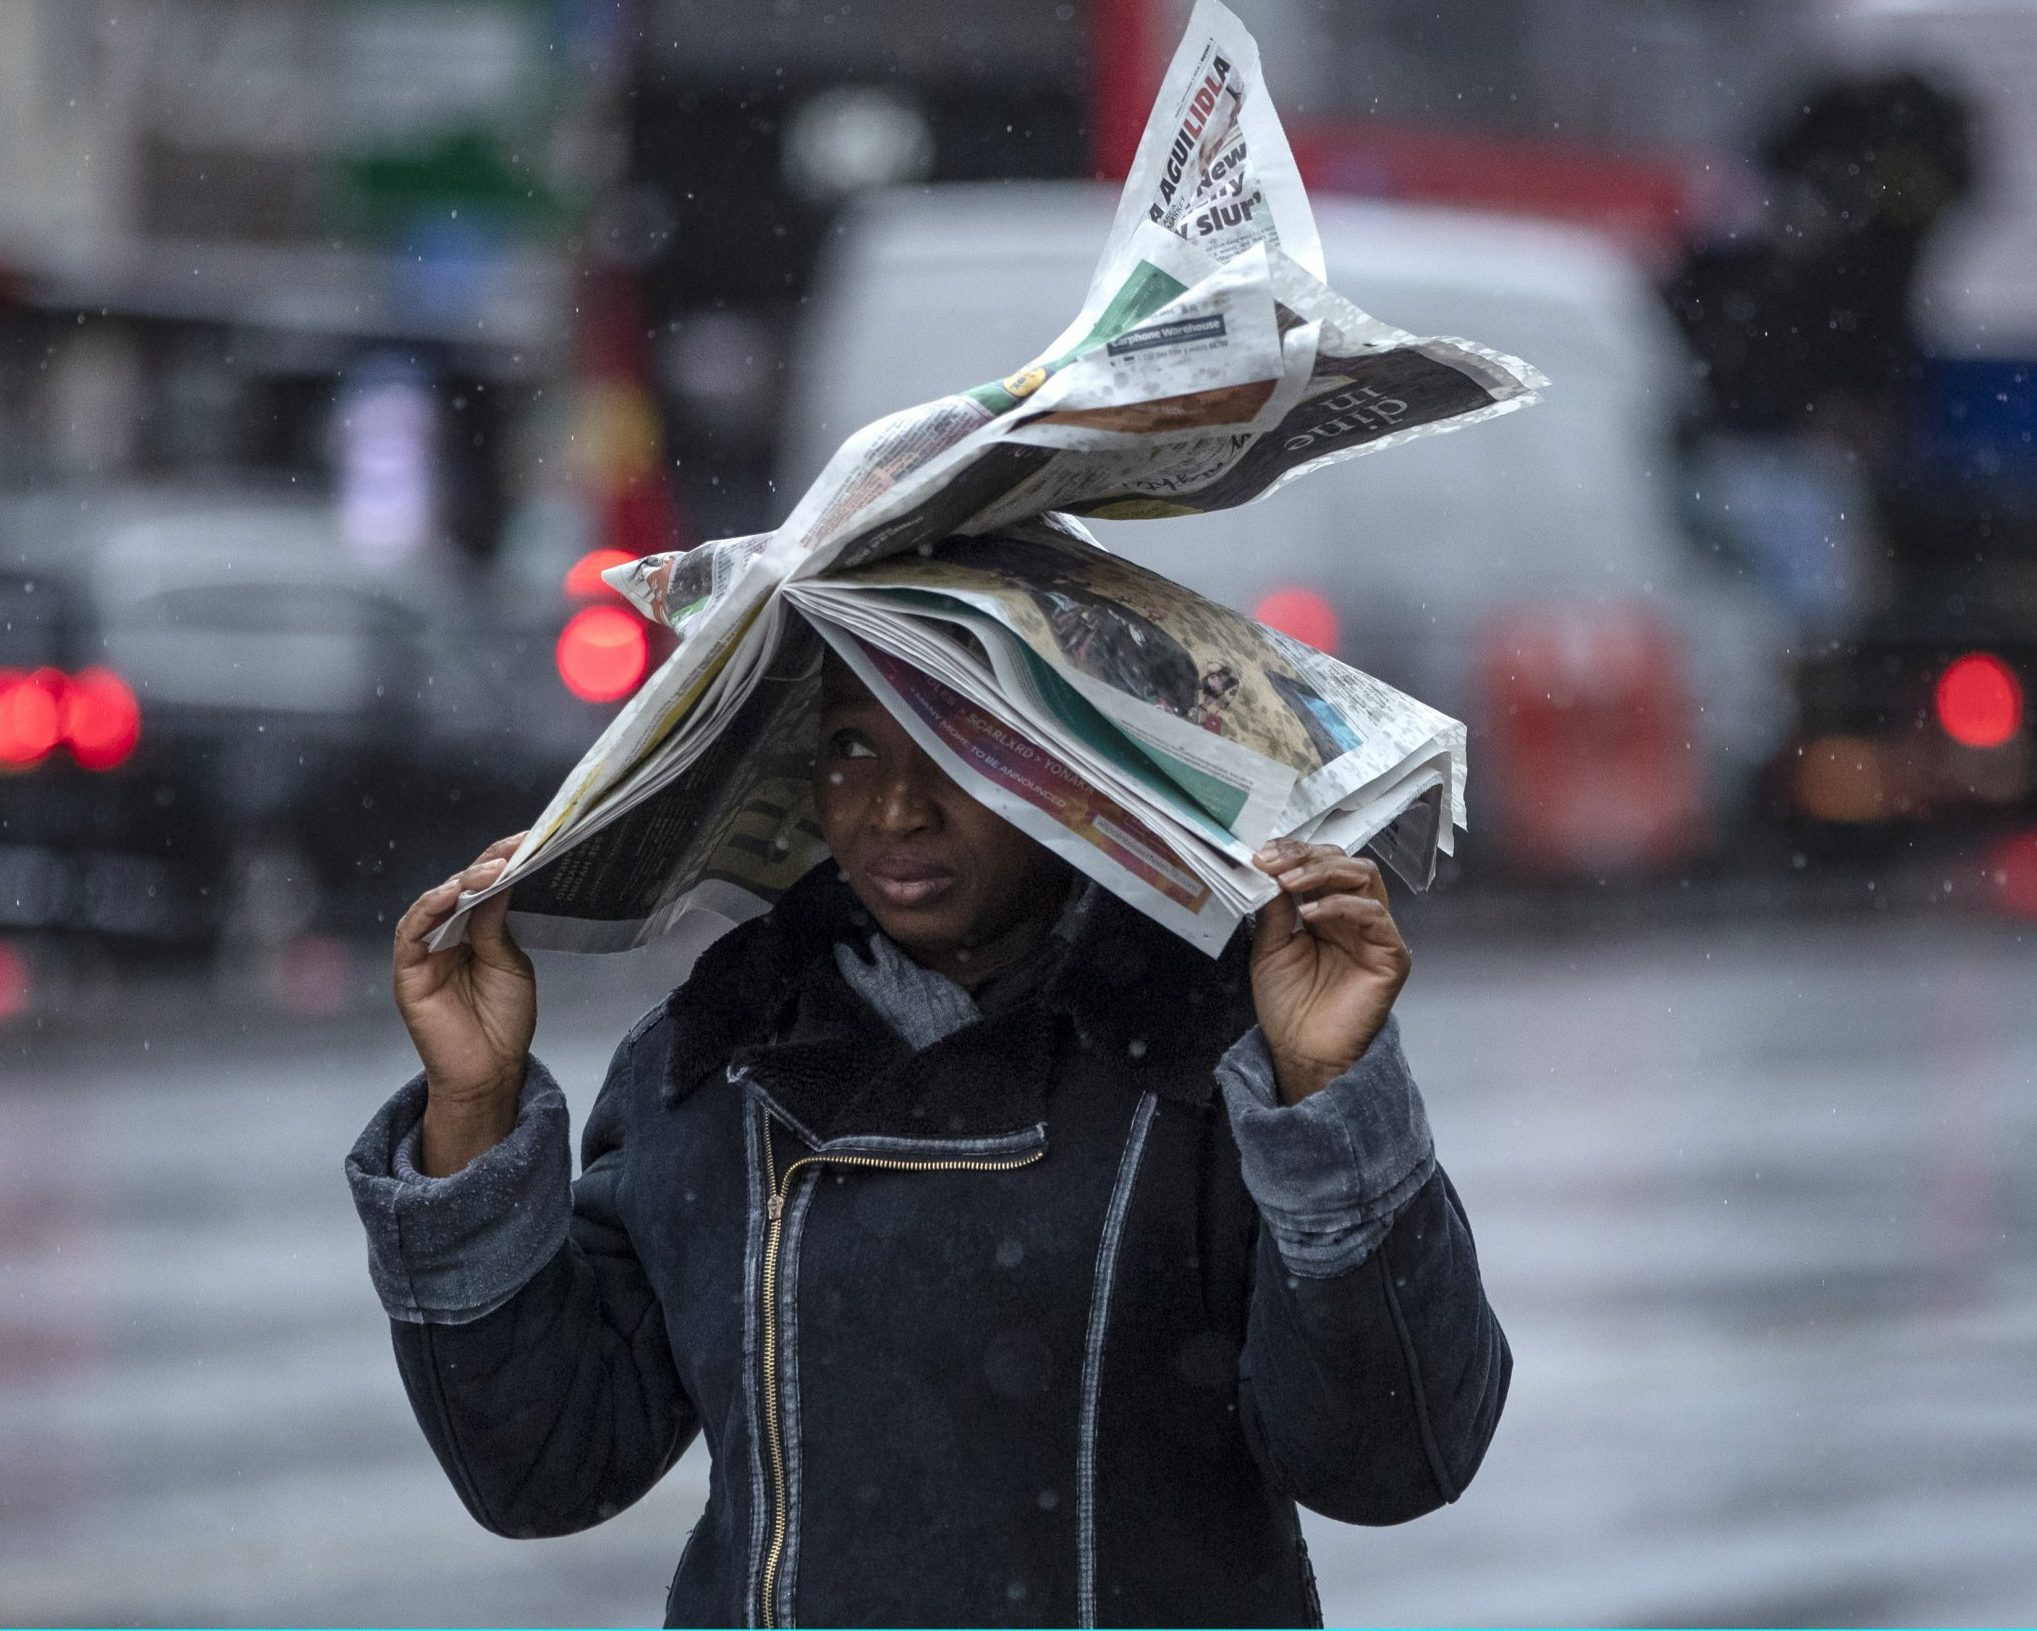 LONDON, ENGLAND - DECEMBER 07: A woman uses a newspaper to shield herself from the rain at Elephant and Castle on December 7, 2018 in London, England. The Met Office has issued a yellow weather warning for the South West of England and Wales with torrential rain and strong winds expected across much of the country over the weekend. (Photo by Dan Kitwood/Getty Images)